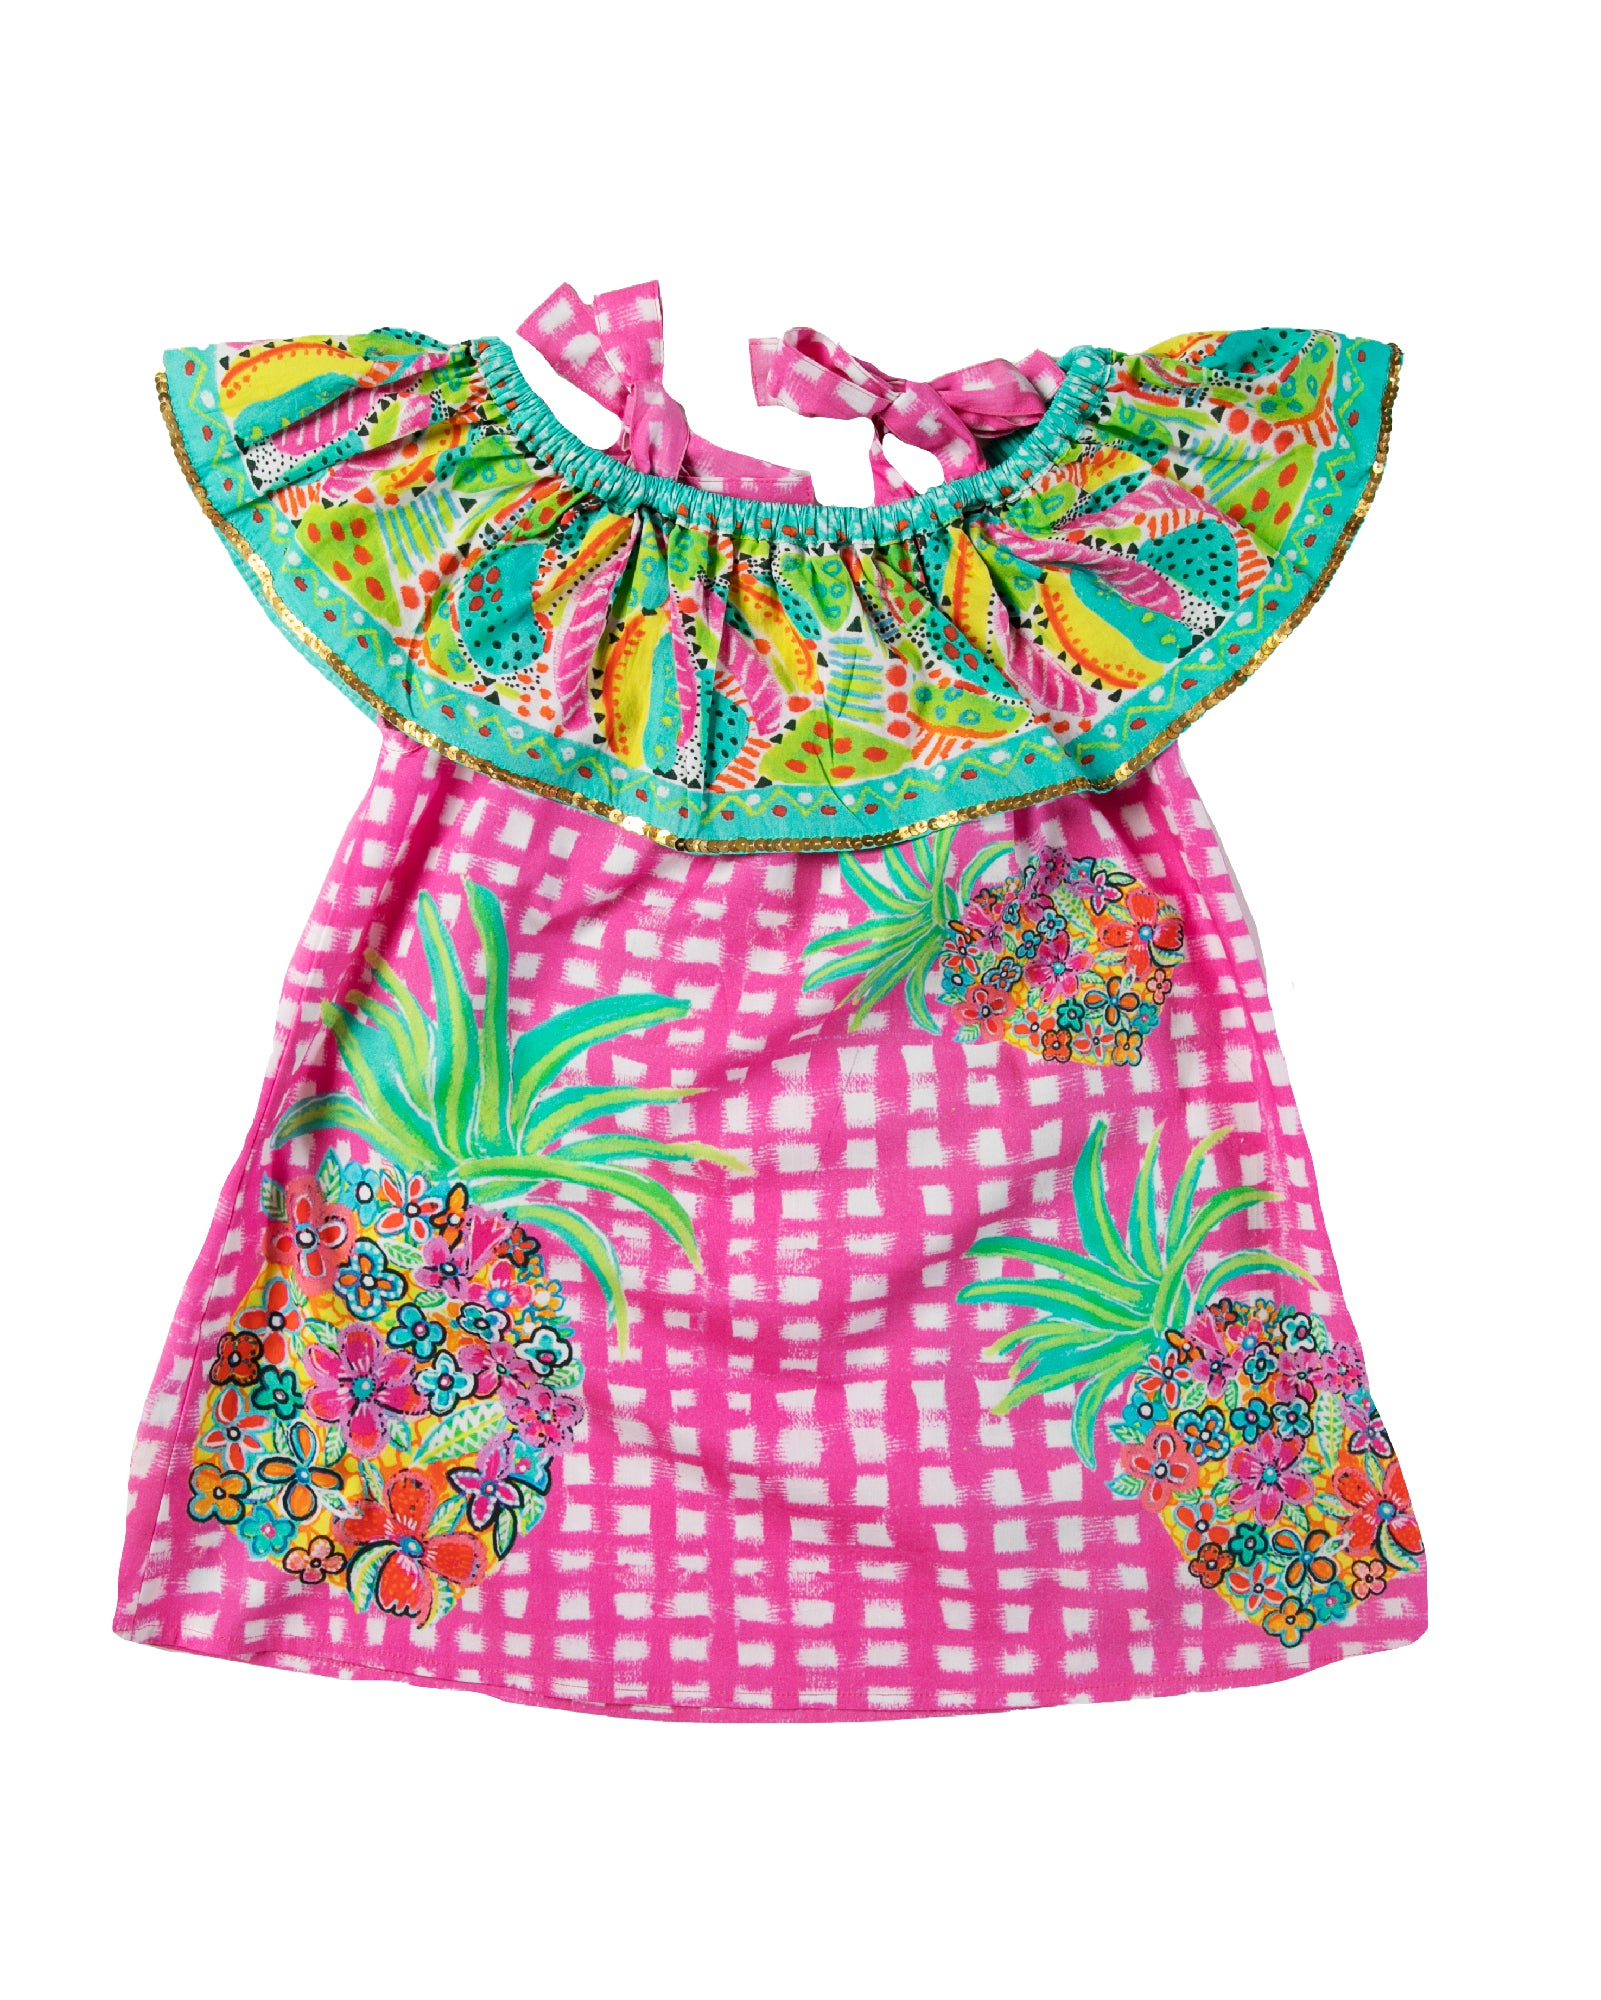 The Floral Pineapple OTS Girls Dress by Bonita Bambino - Back